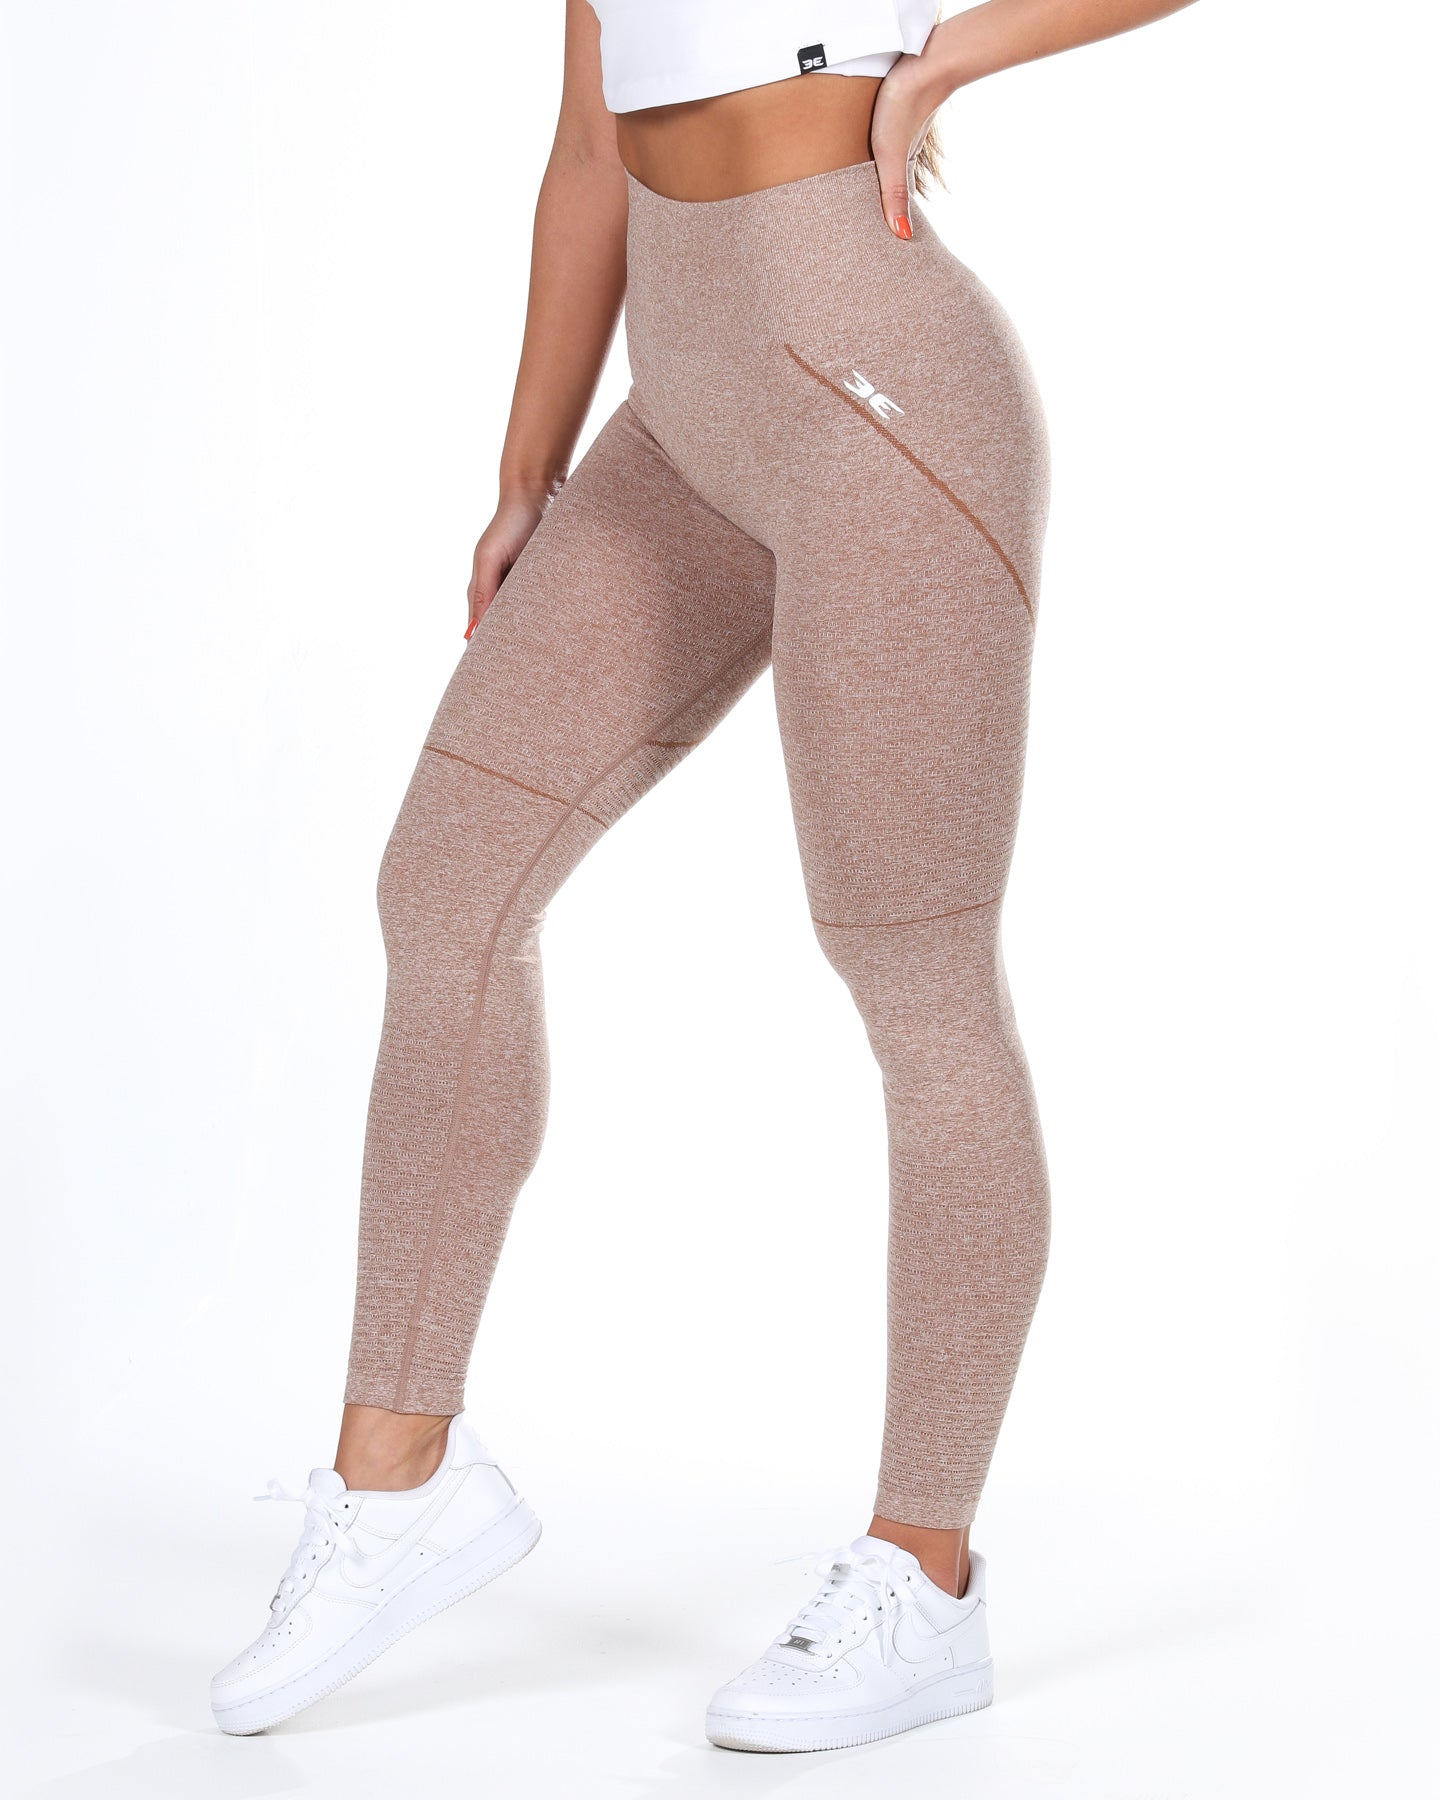 Elite Seamless Leggings - Caramel